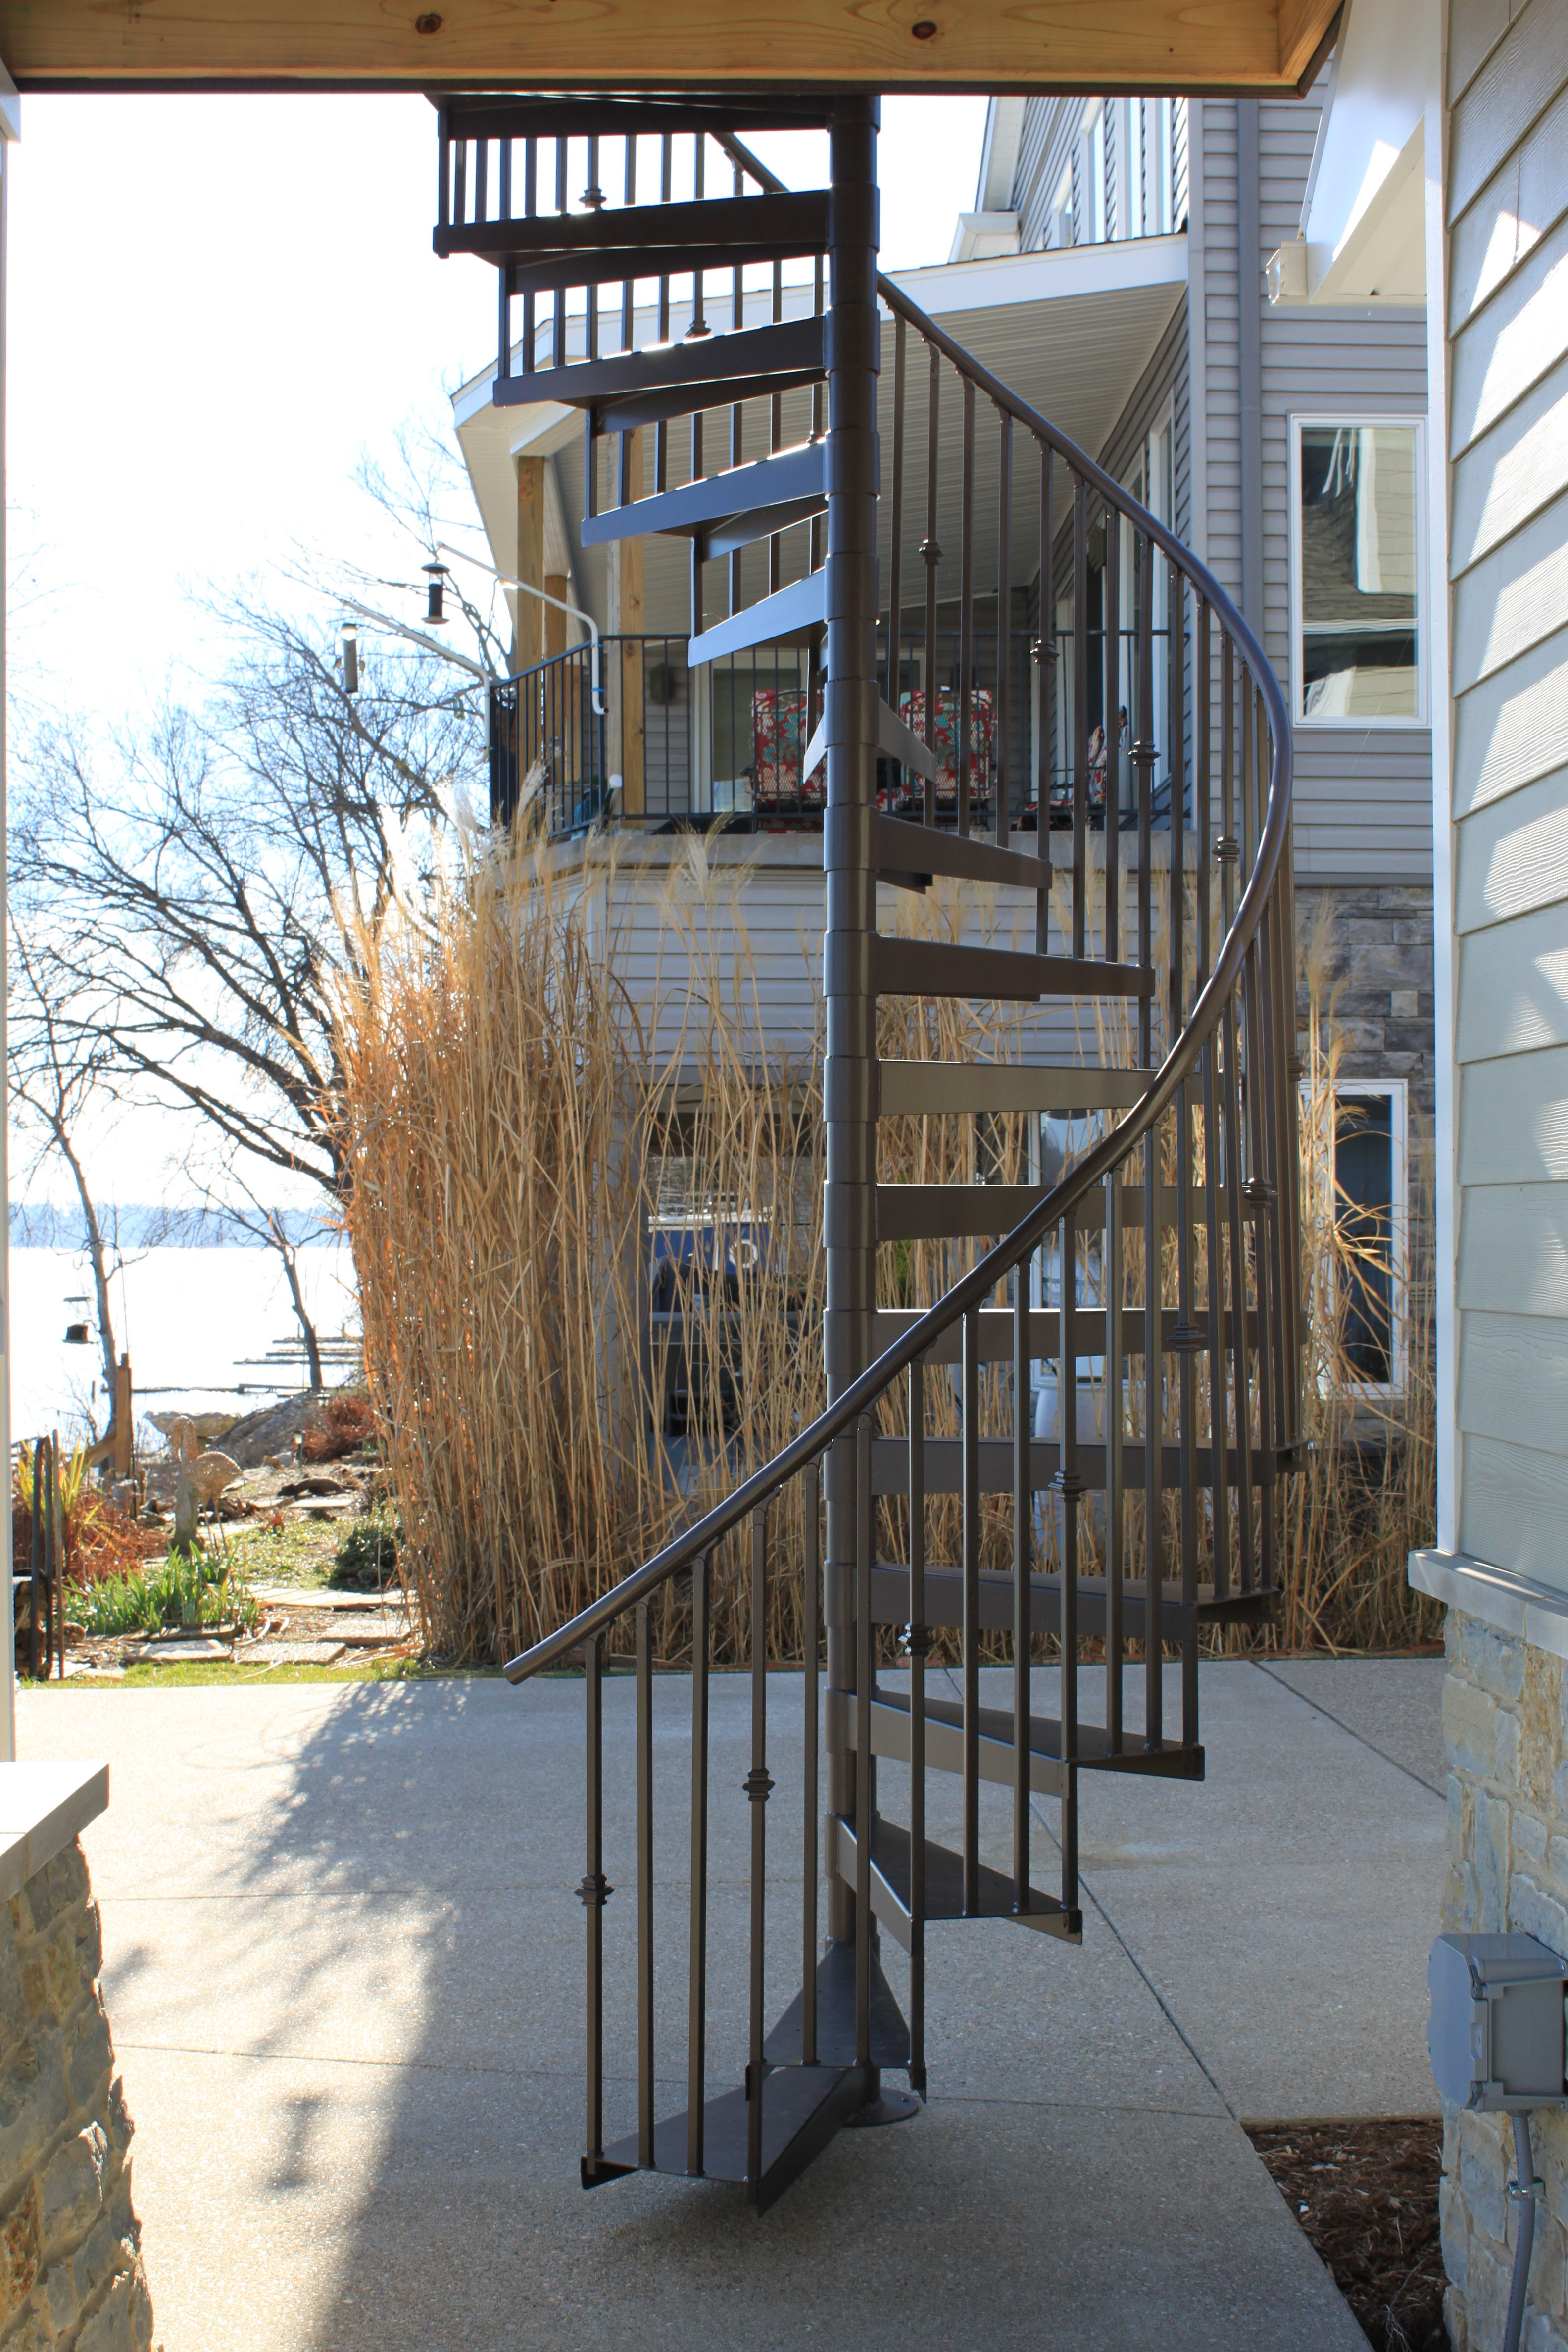 Spiral Staircases Heck S Metal Works | Circular Stairs For Sale | Shop | Glass | Wooden | Modern | Wrought Iron